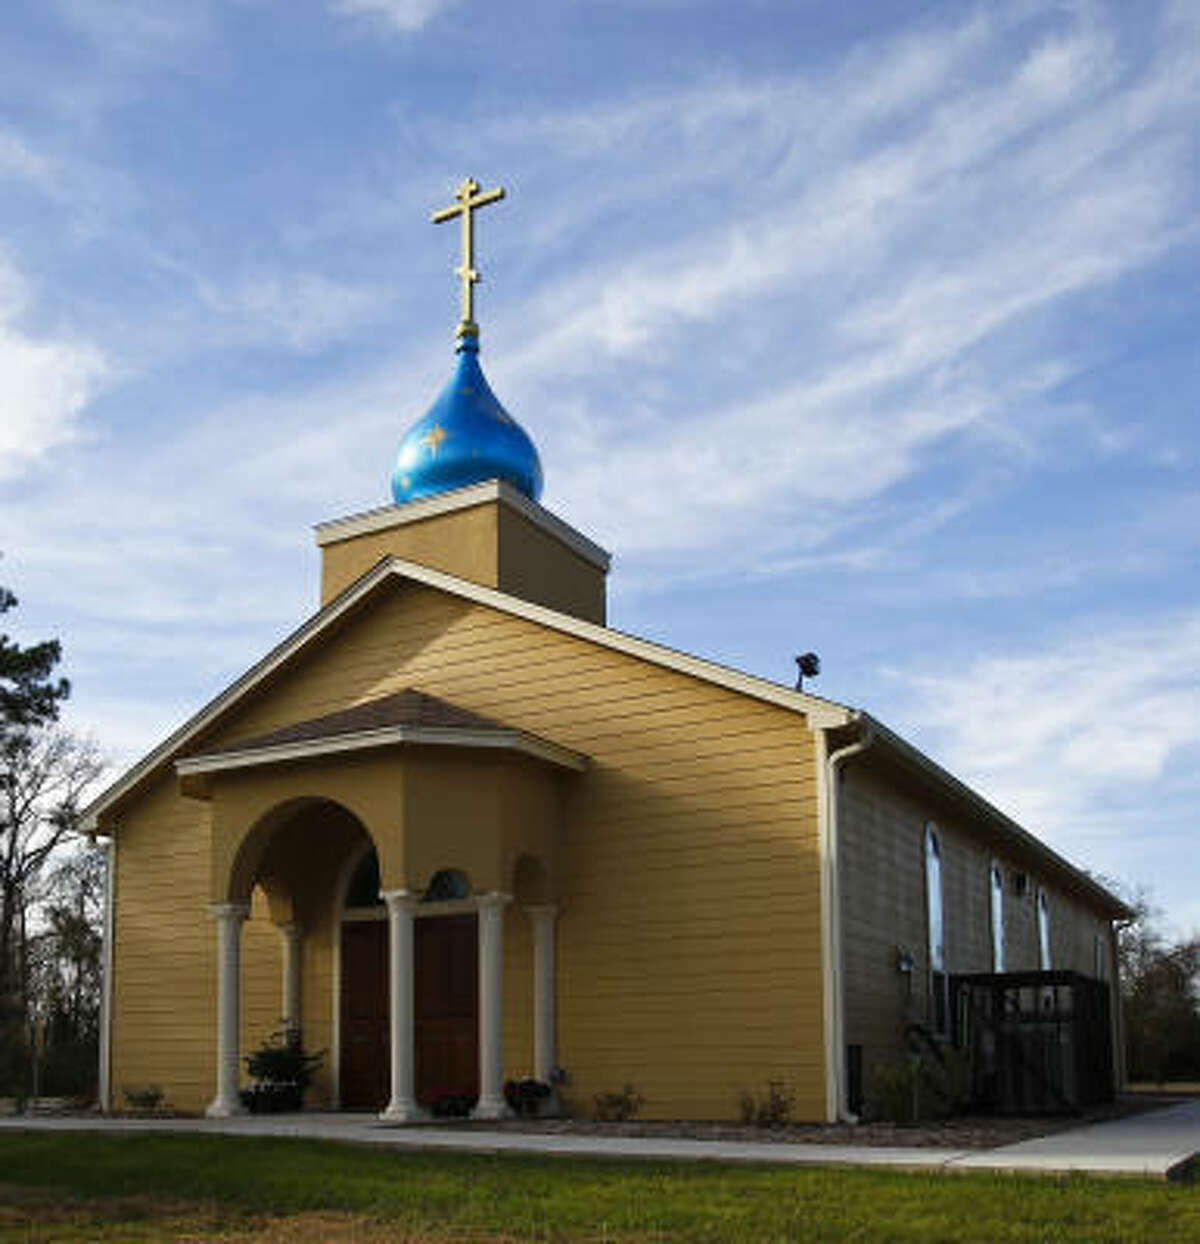 About half of St. Jonah Orthodox Church's congregation in Spring are converts who, with immigrants, have fueled a 16 percent rise in the number of U.S. Orthodox parishes in the past decade.